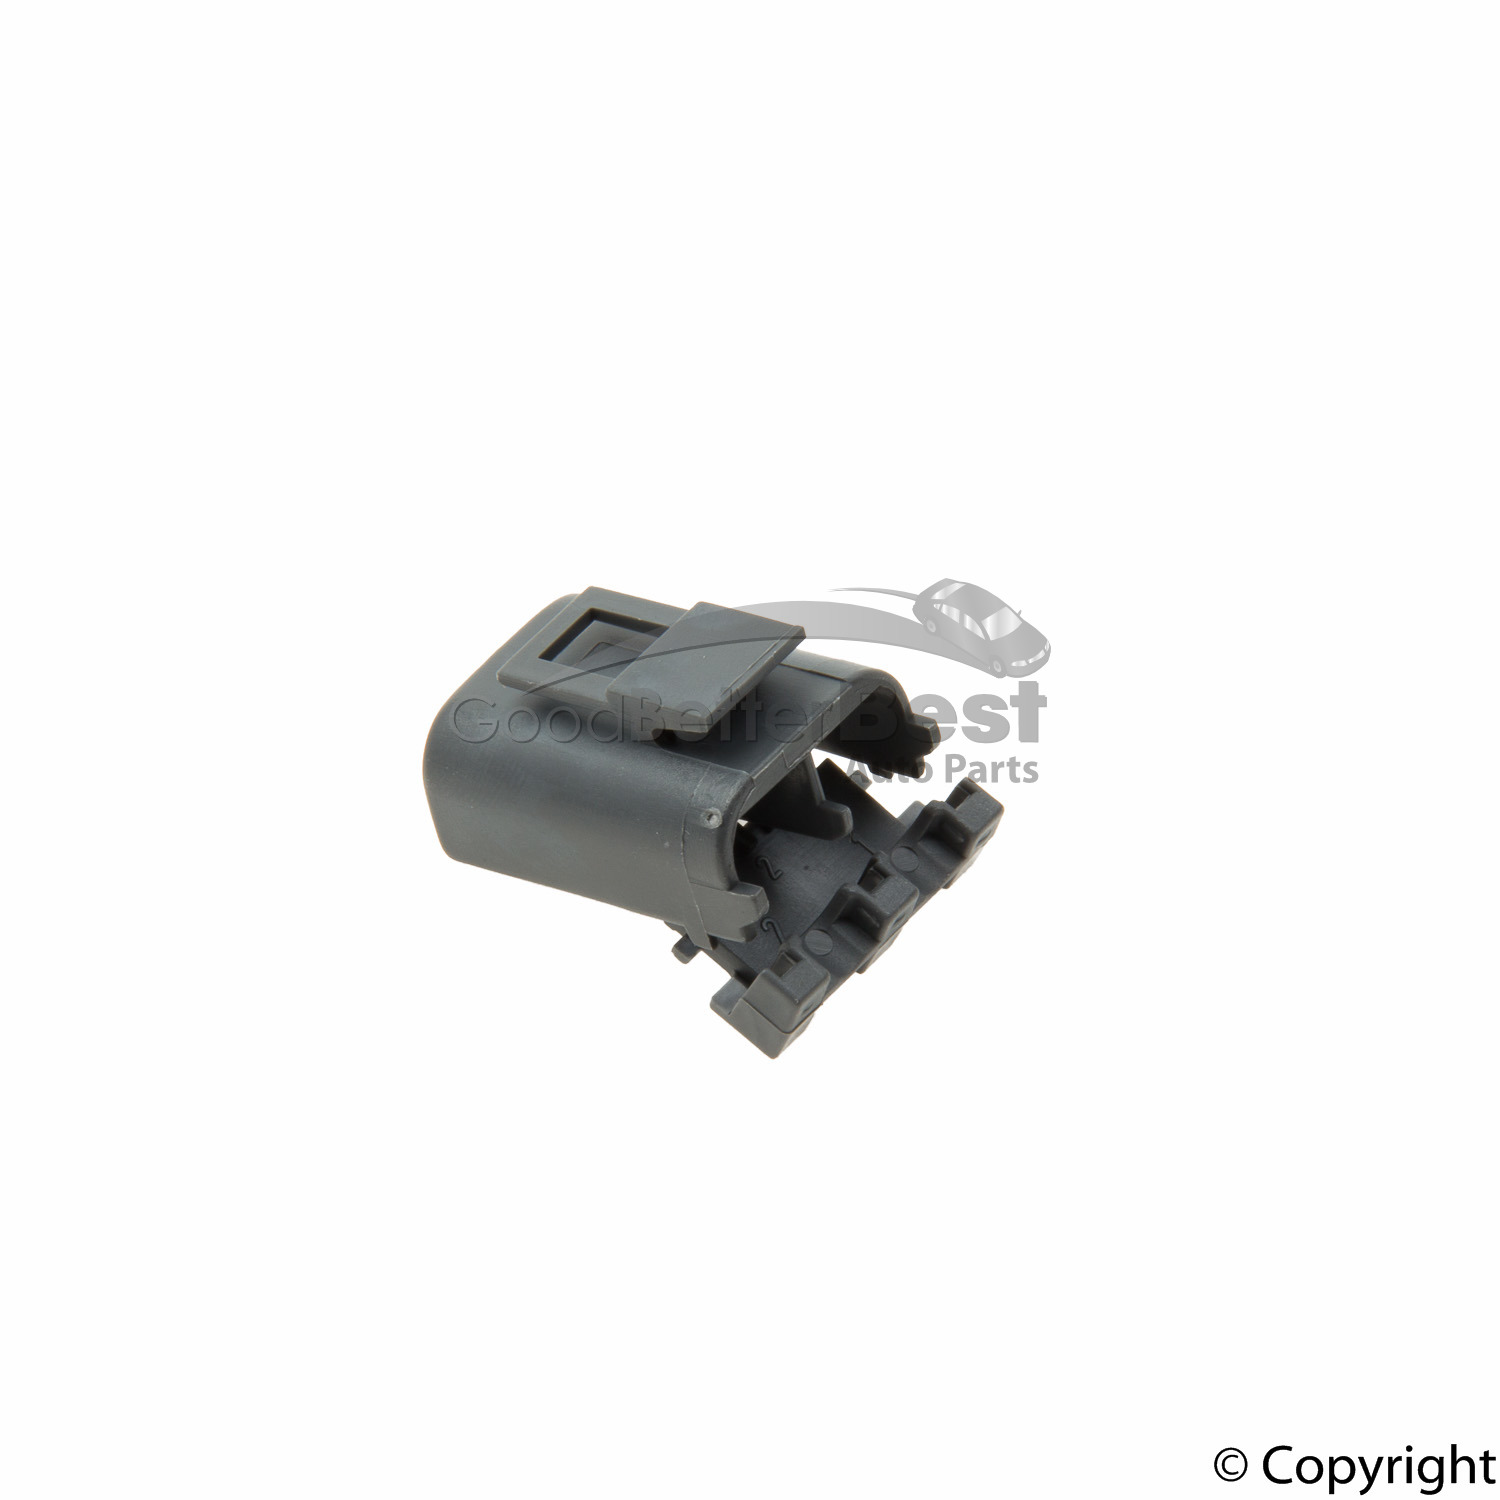 hight resolution of details about one new genuine wiring harness connector plug 9144275 for volvo